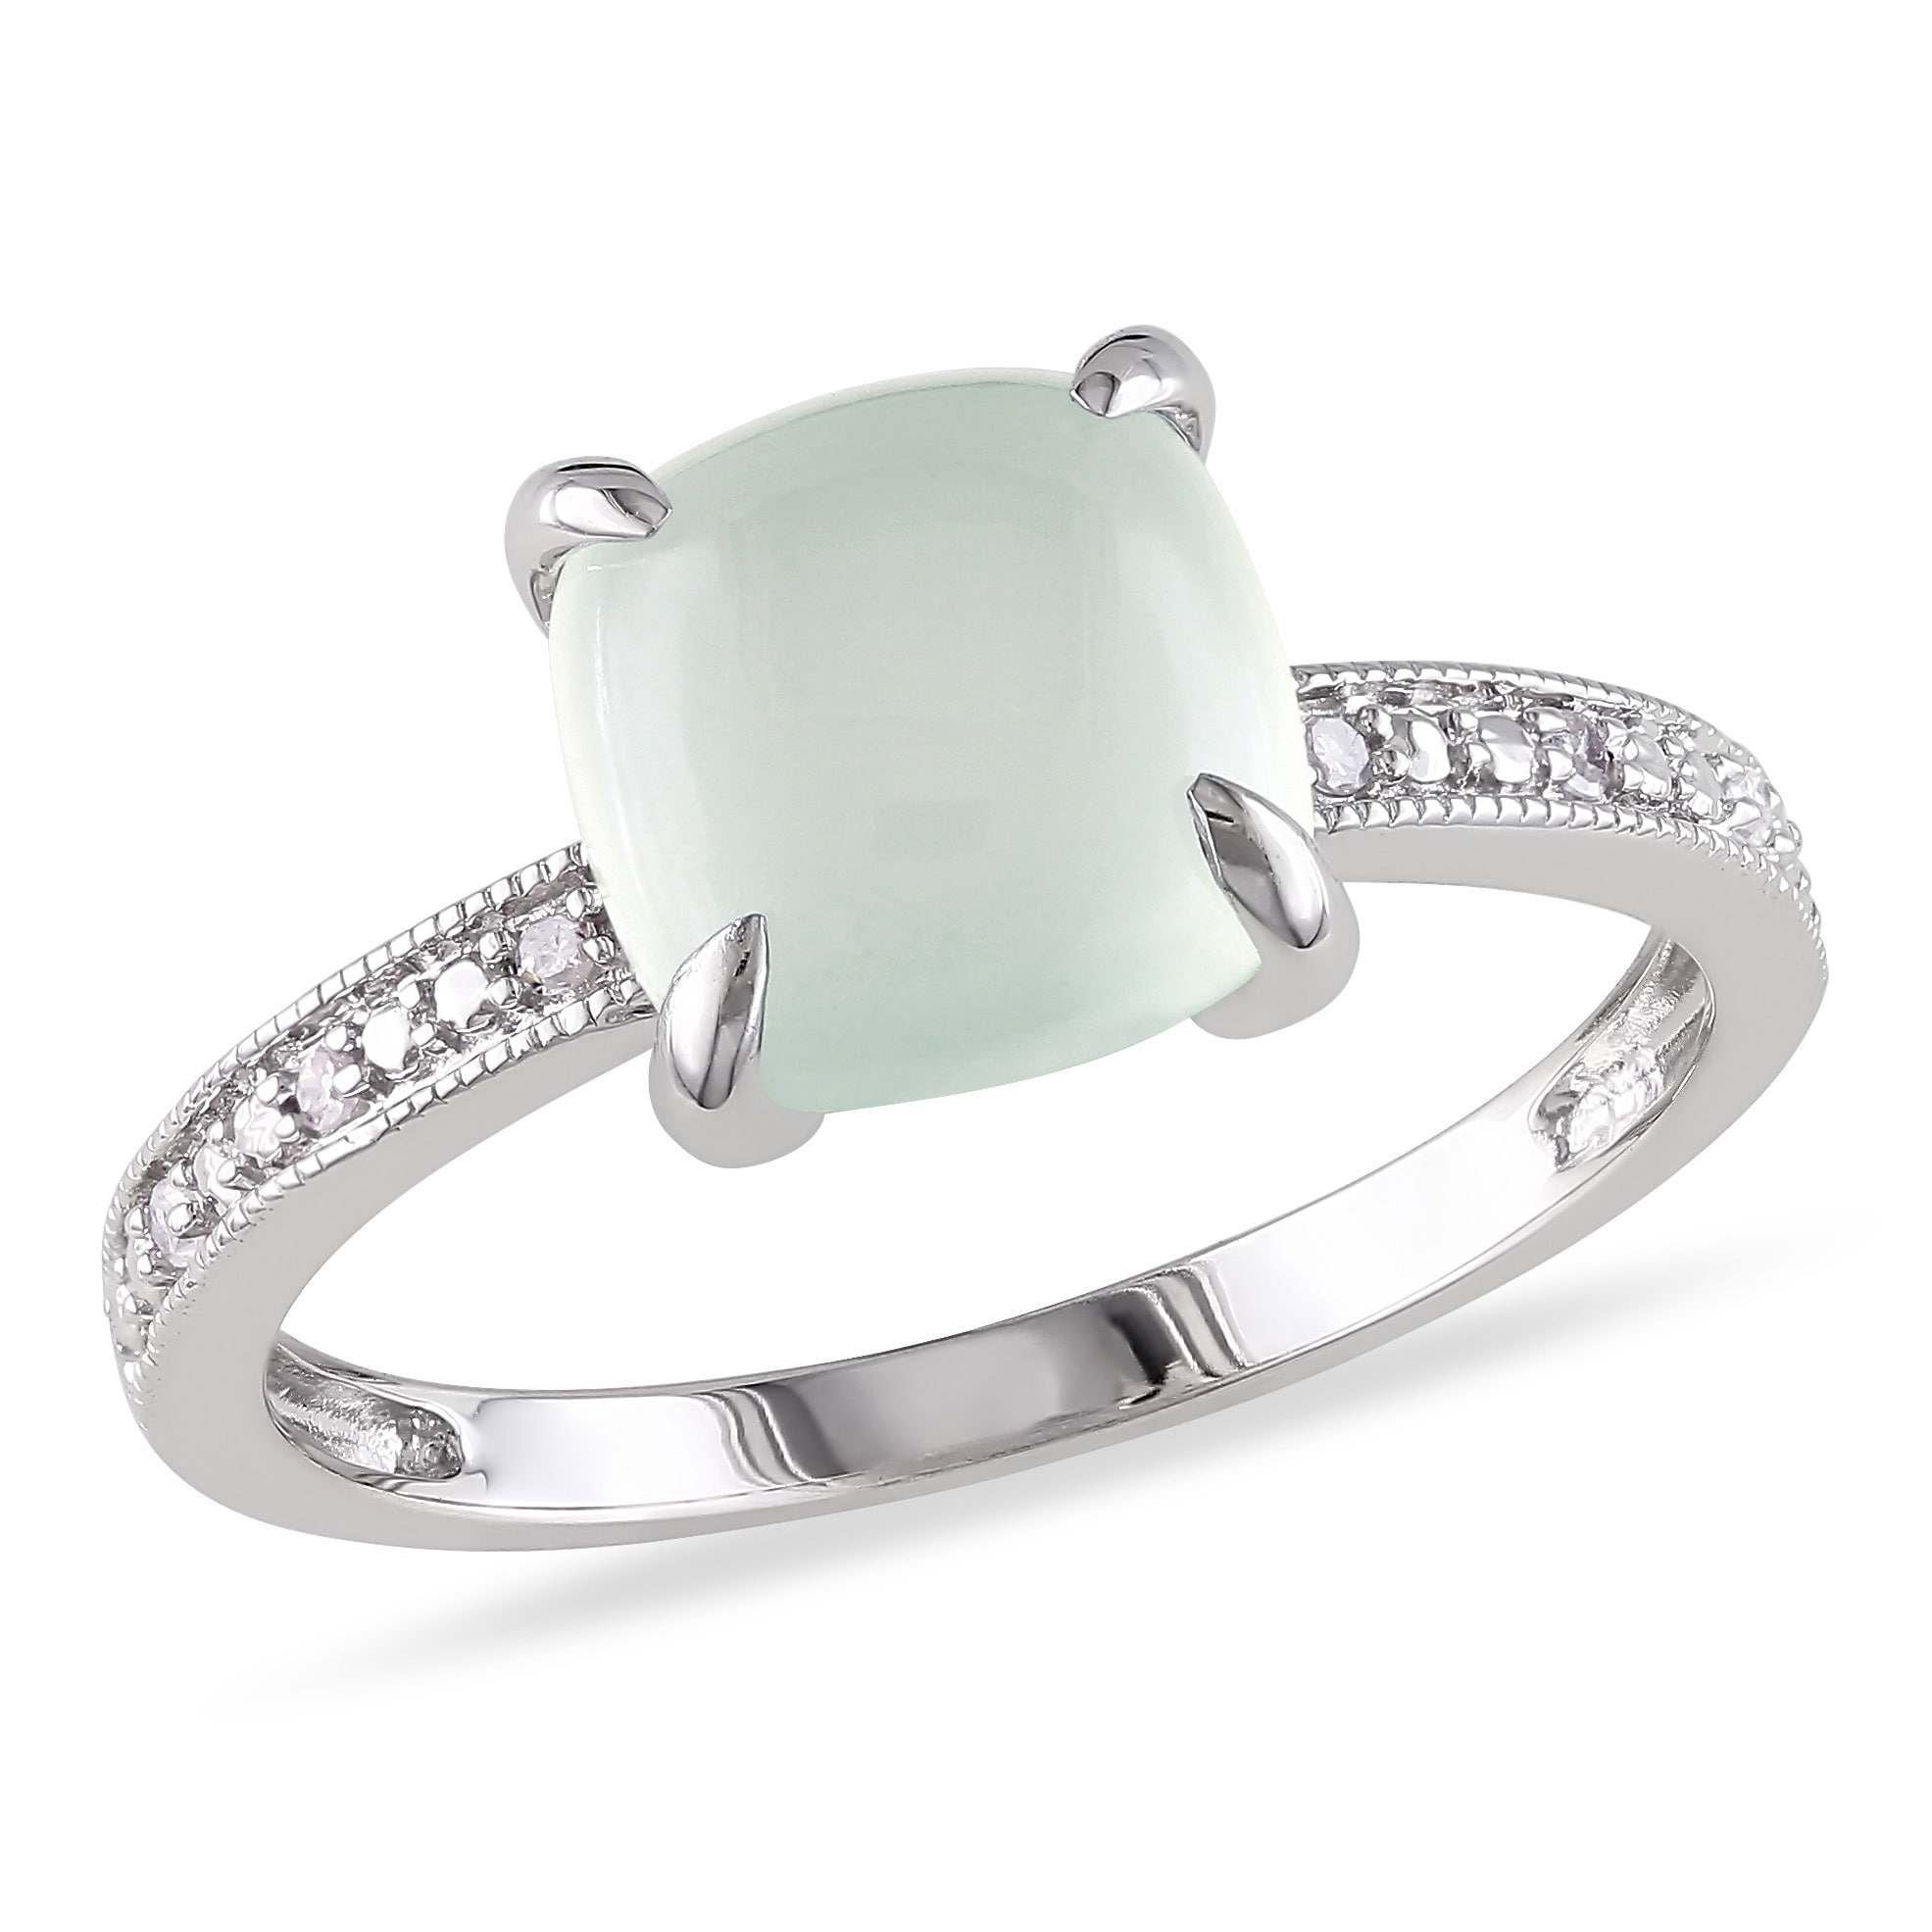 Miadora 10k White Gold 1 3/4ct Milky Aquamarine and Diamond Ring